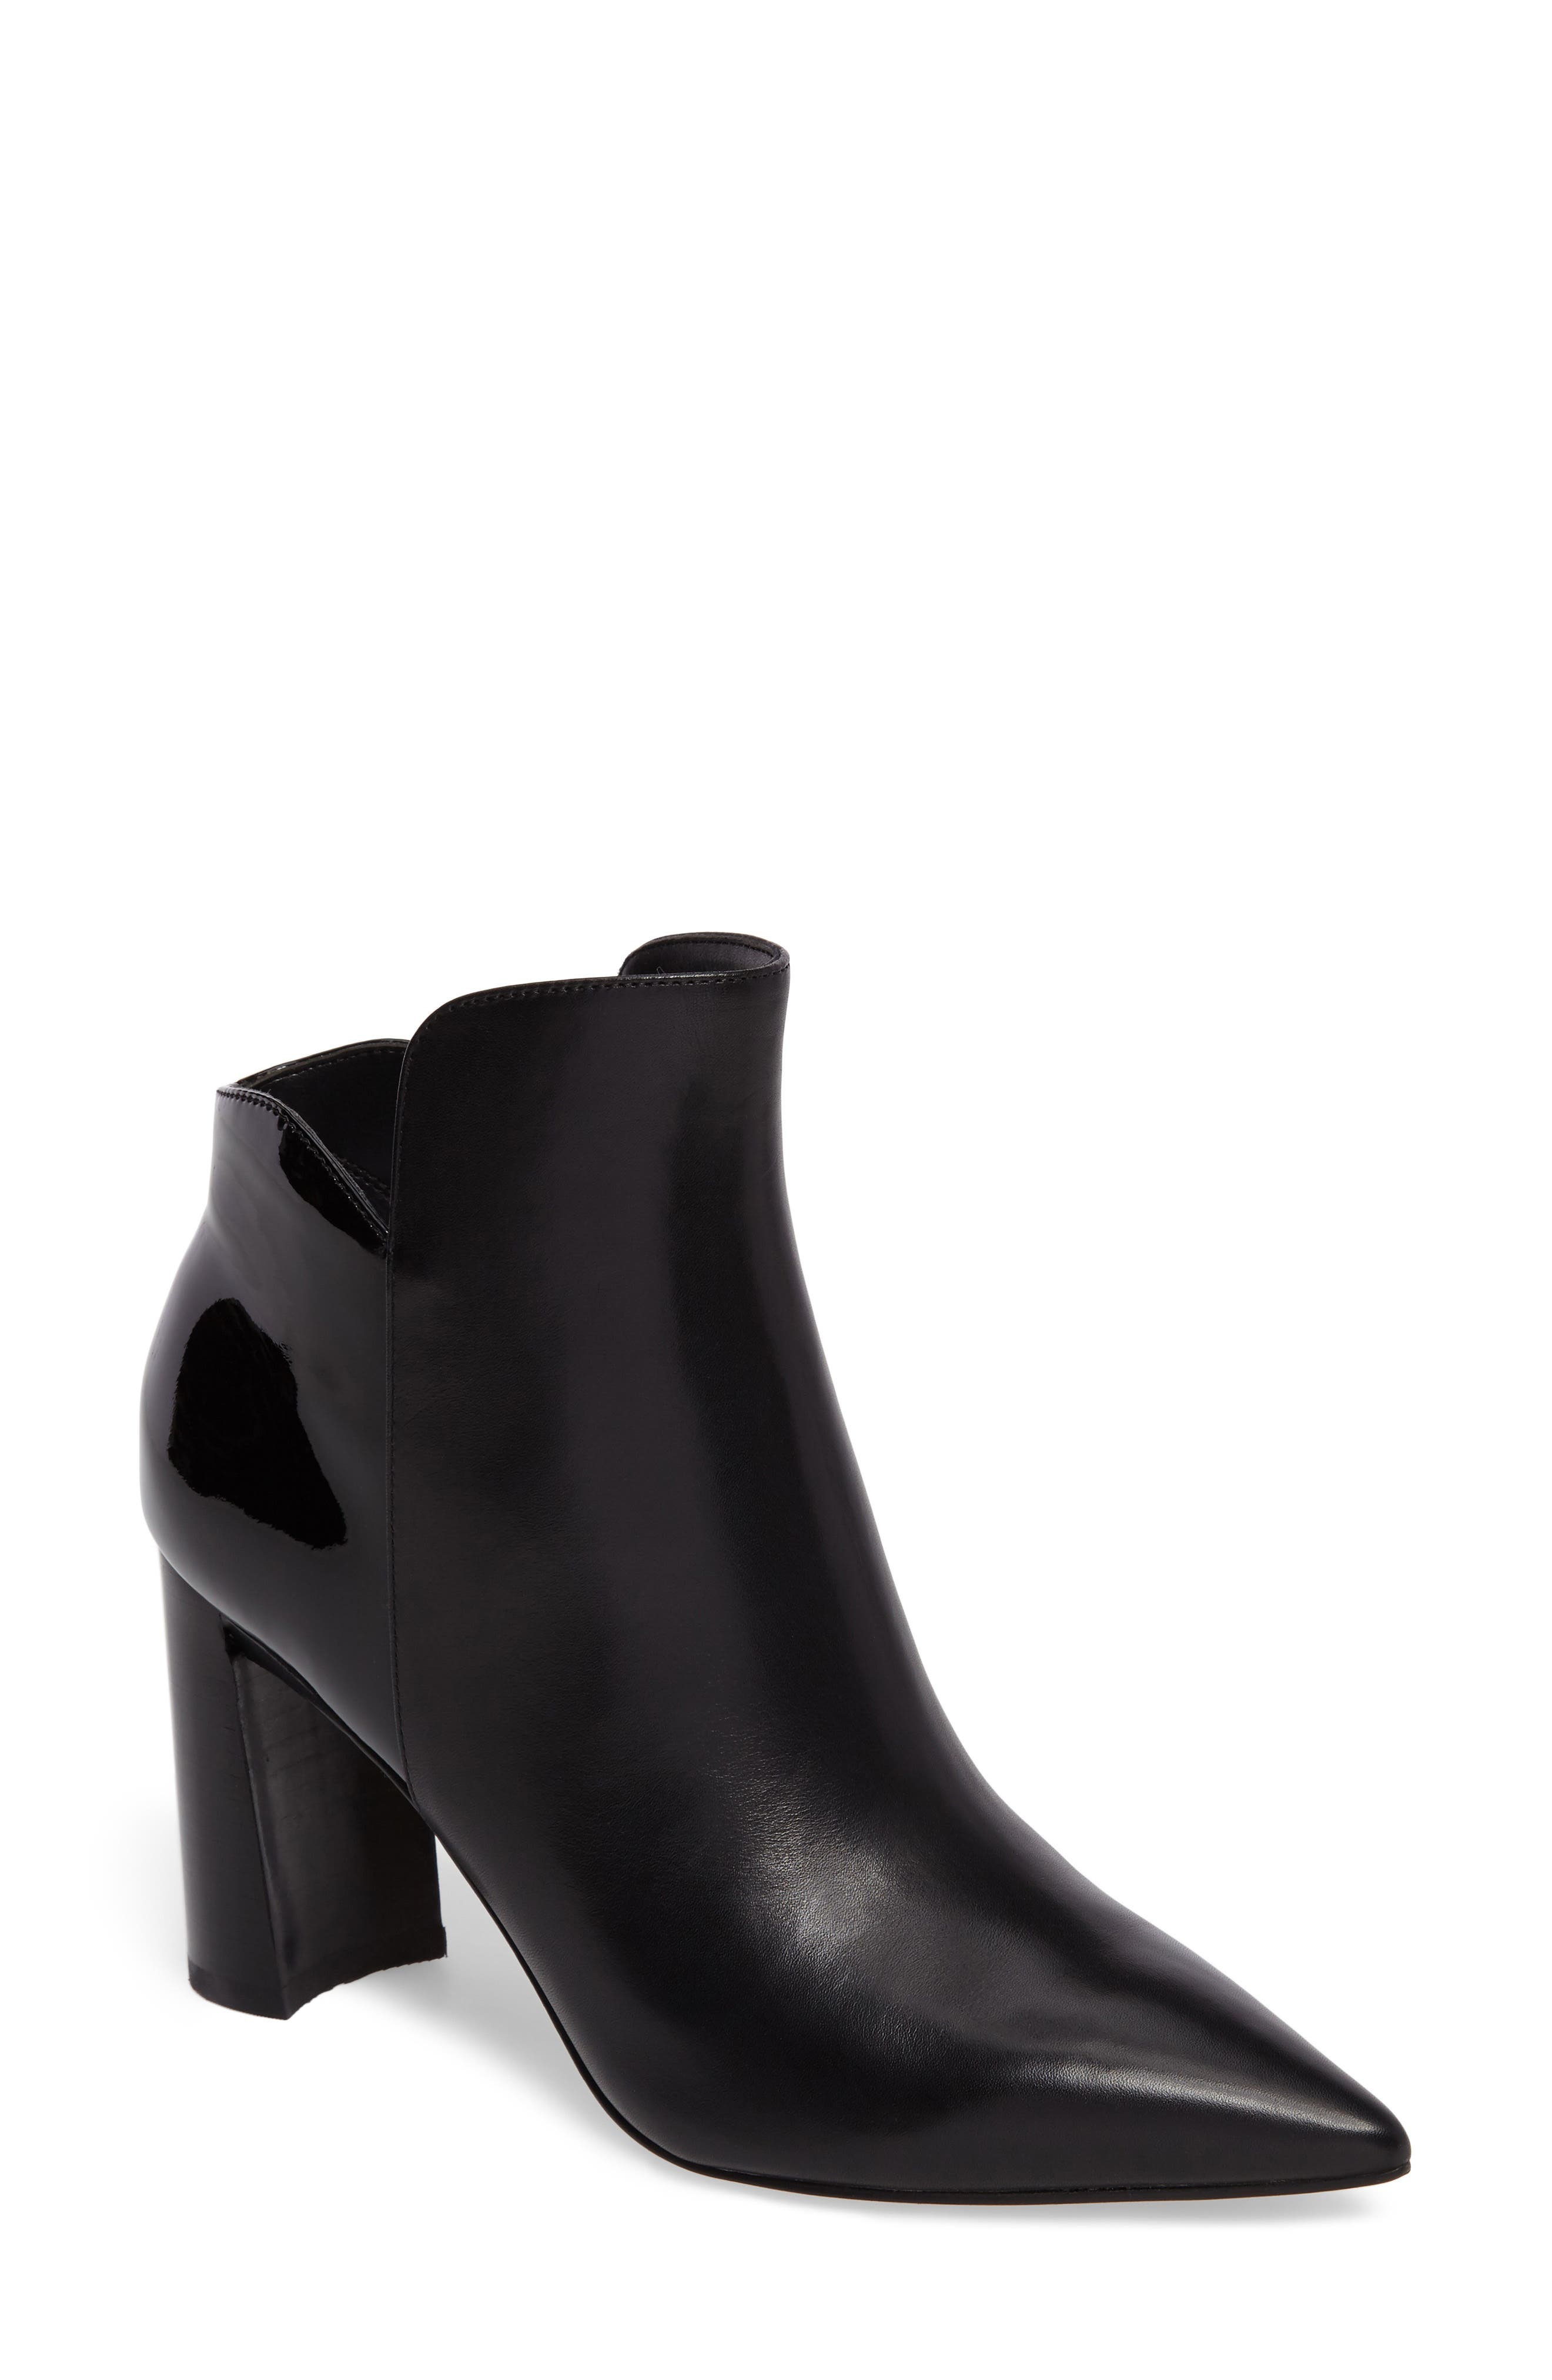 Main Image - Marc Fisher LTD Harper Pointy Toe Bootie (Women)